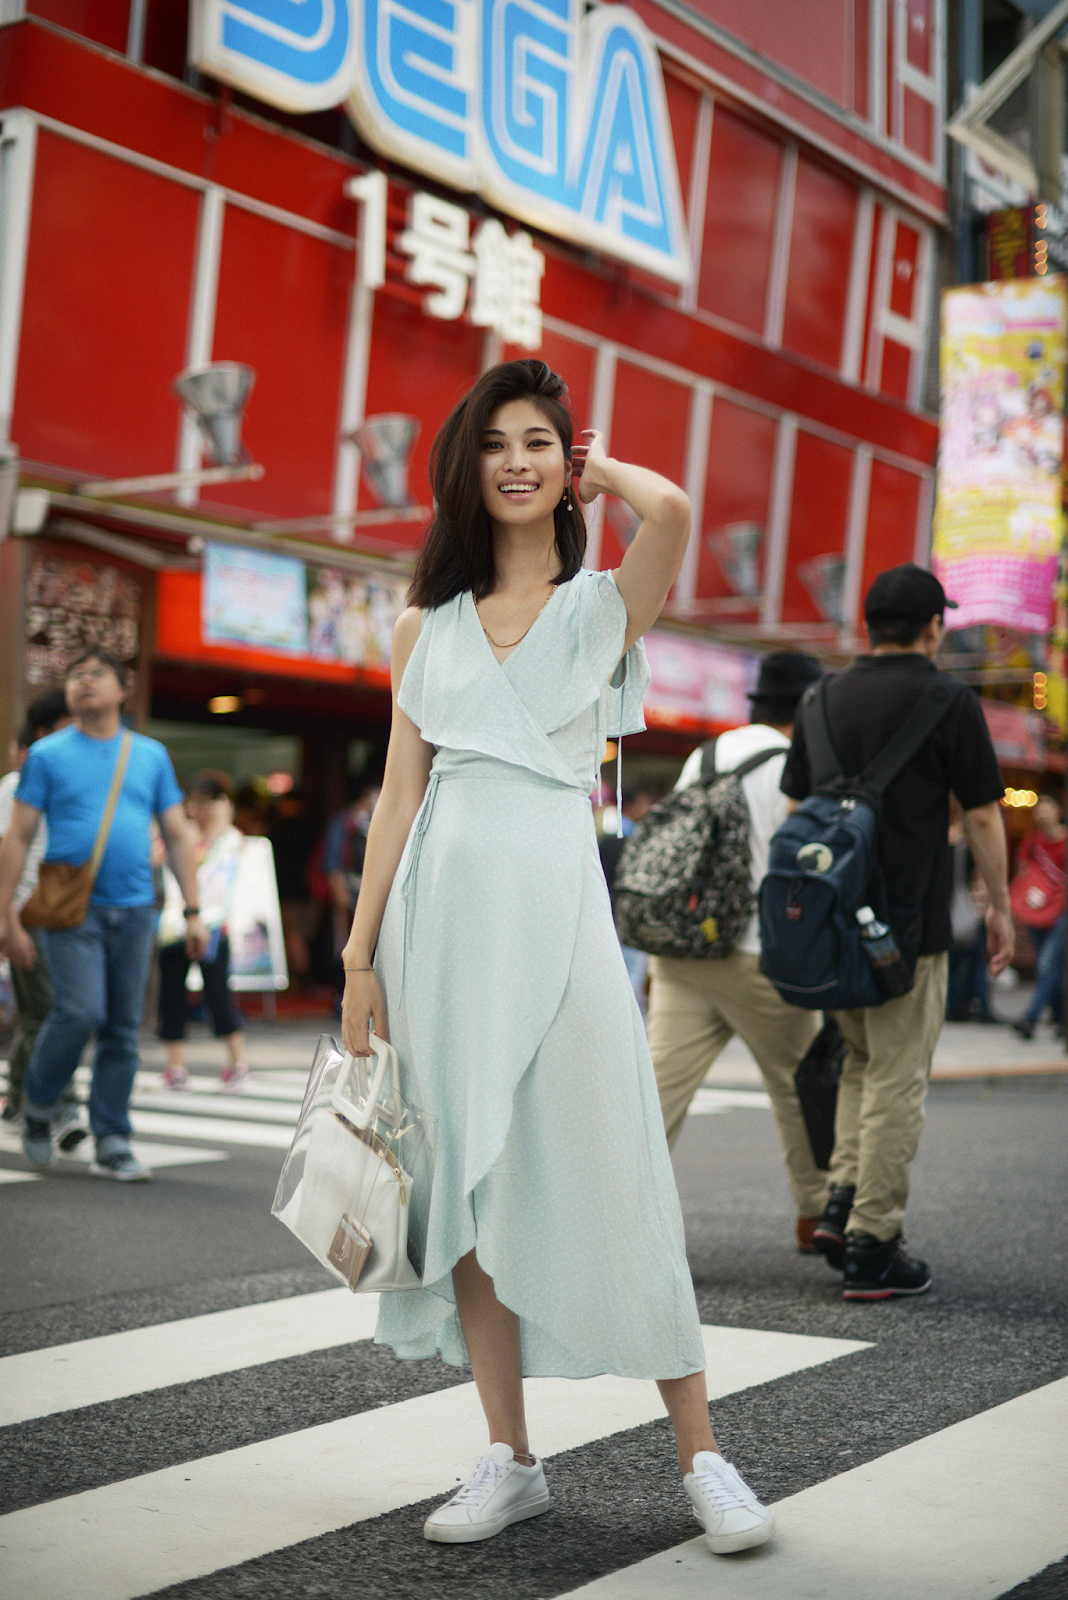 Akihabara girl, streetstyle Tokyo, weekend style, Mint dresses, &Otherstories dress, Tokyo style - FOREVERVANNY / 072018 / Home Sweet Home